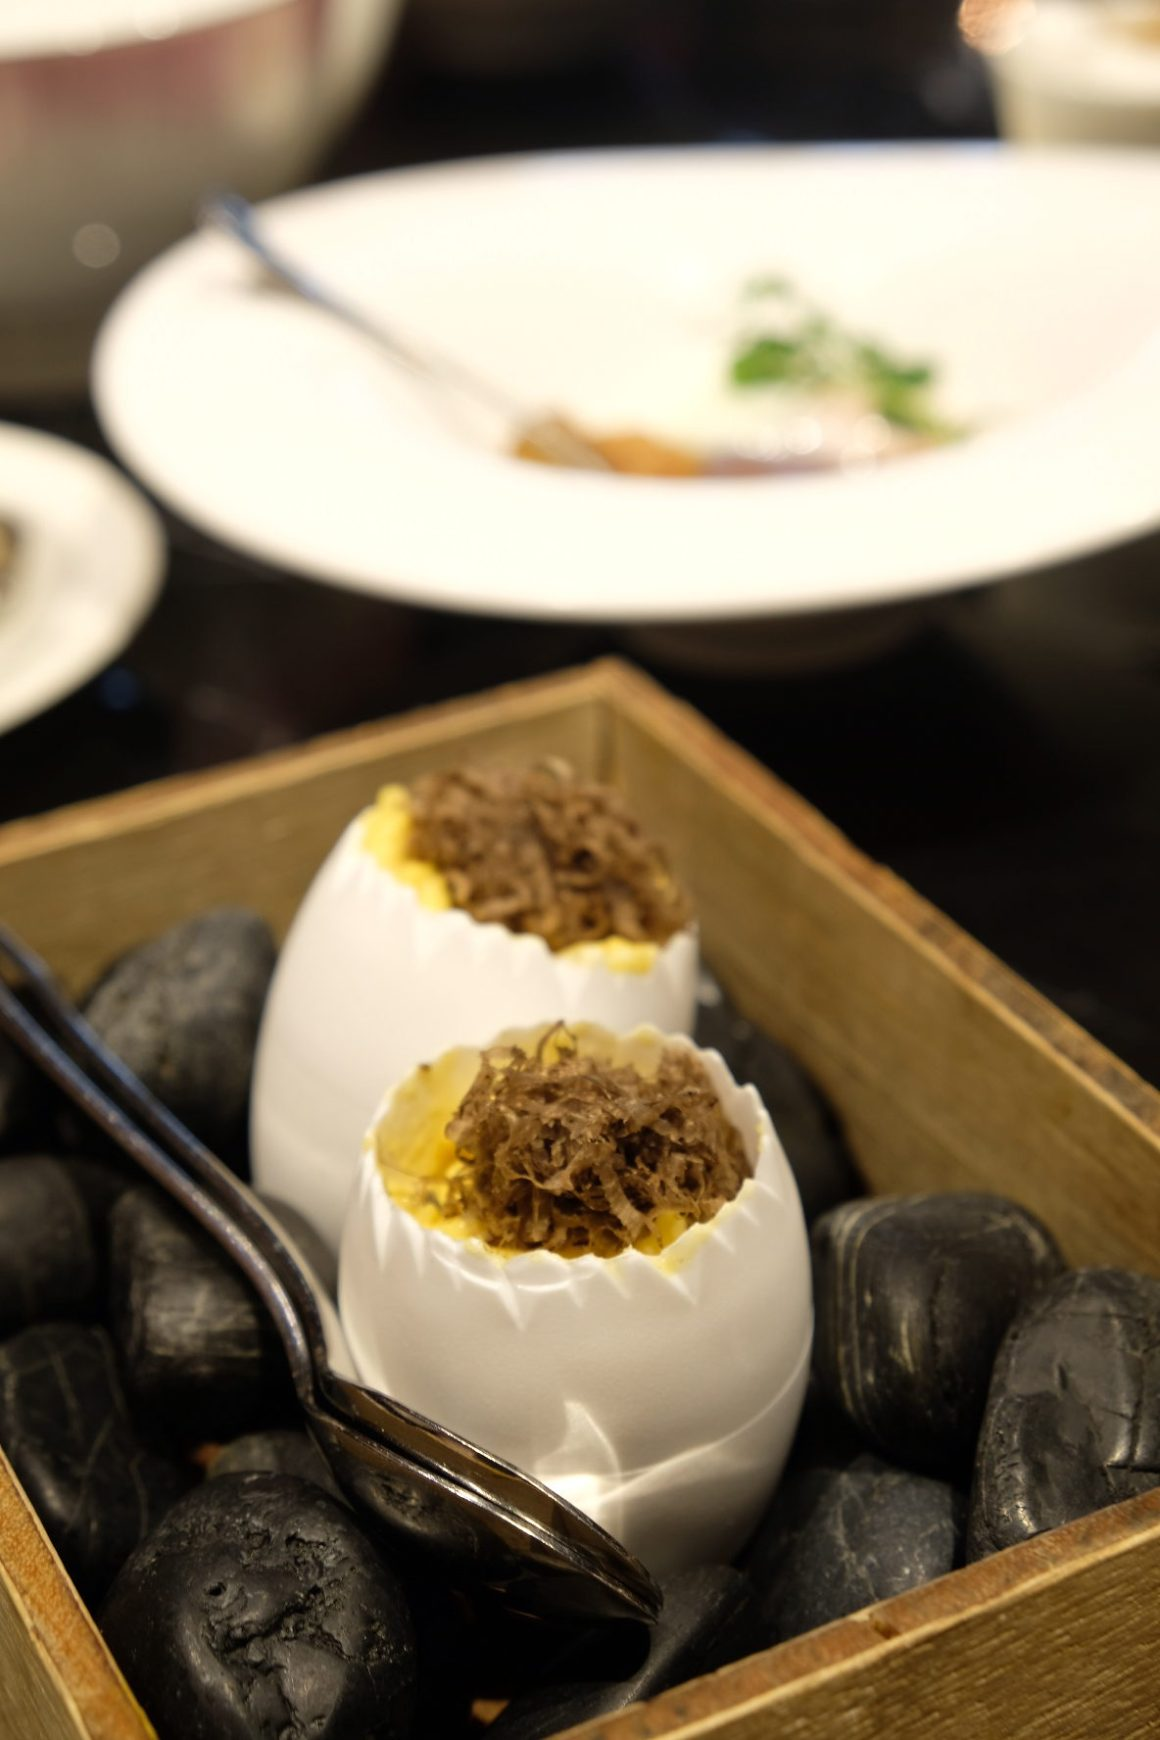 Anti:dote Afternoon Tea, Fairmont Singapore - Seasonal truffles, slow-cooked egg with chives